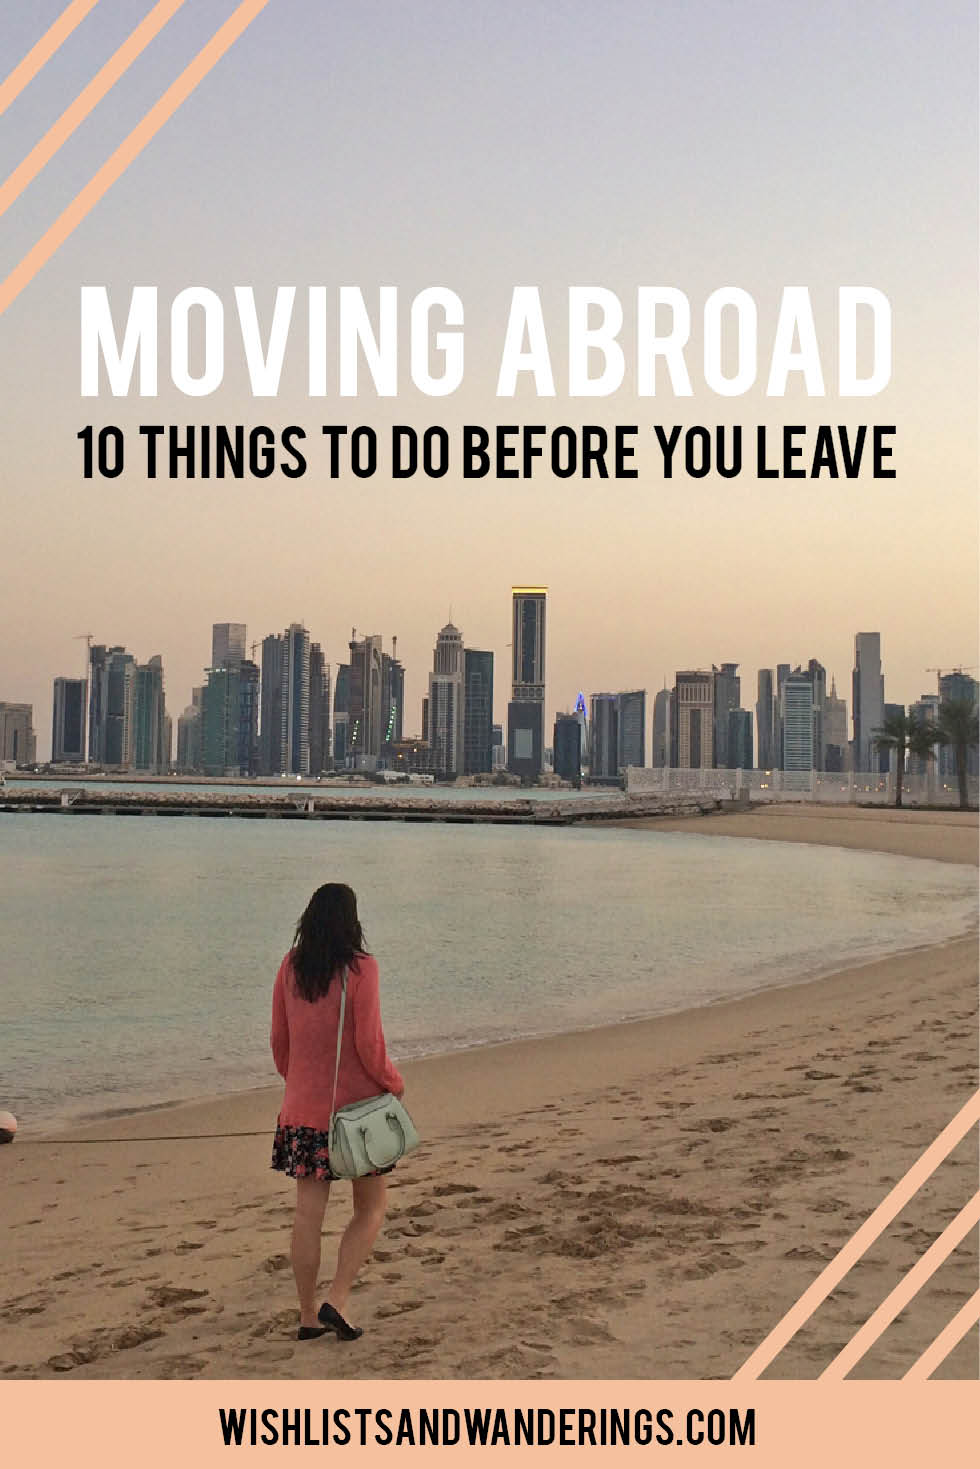 Thinking about moving abroad and wondering what exactly do you have to do before you go? Here are some practical tips, advice and strategies to help you prepare for the change.